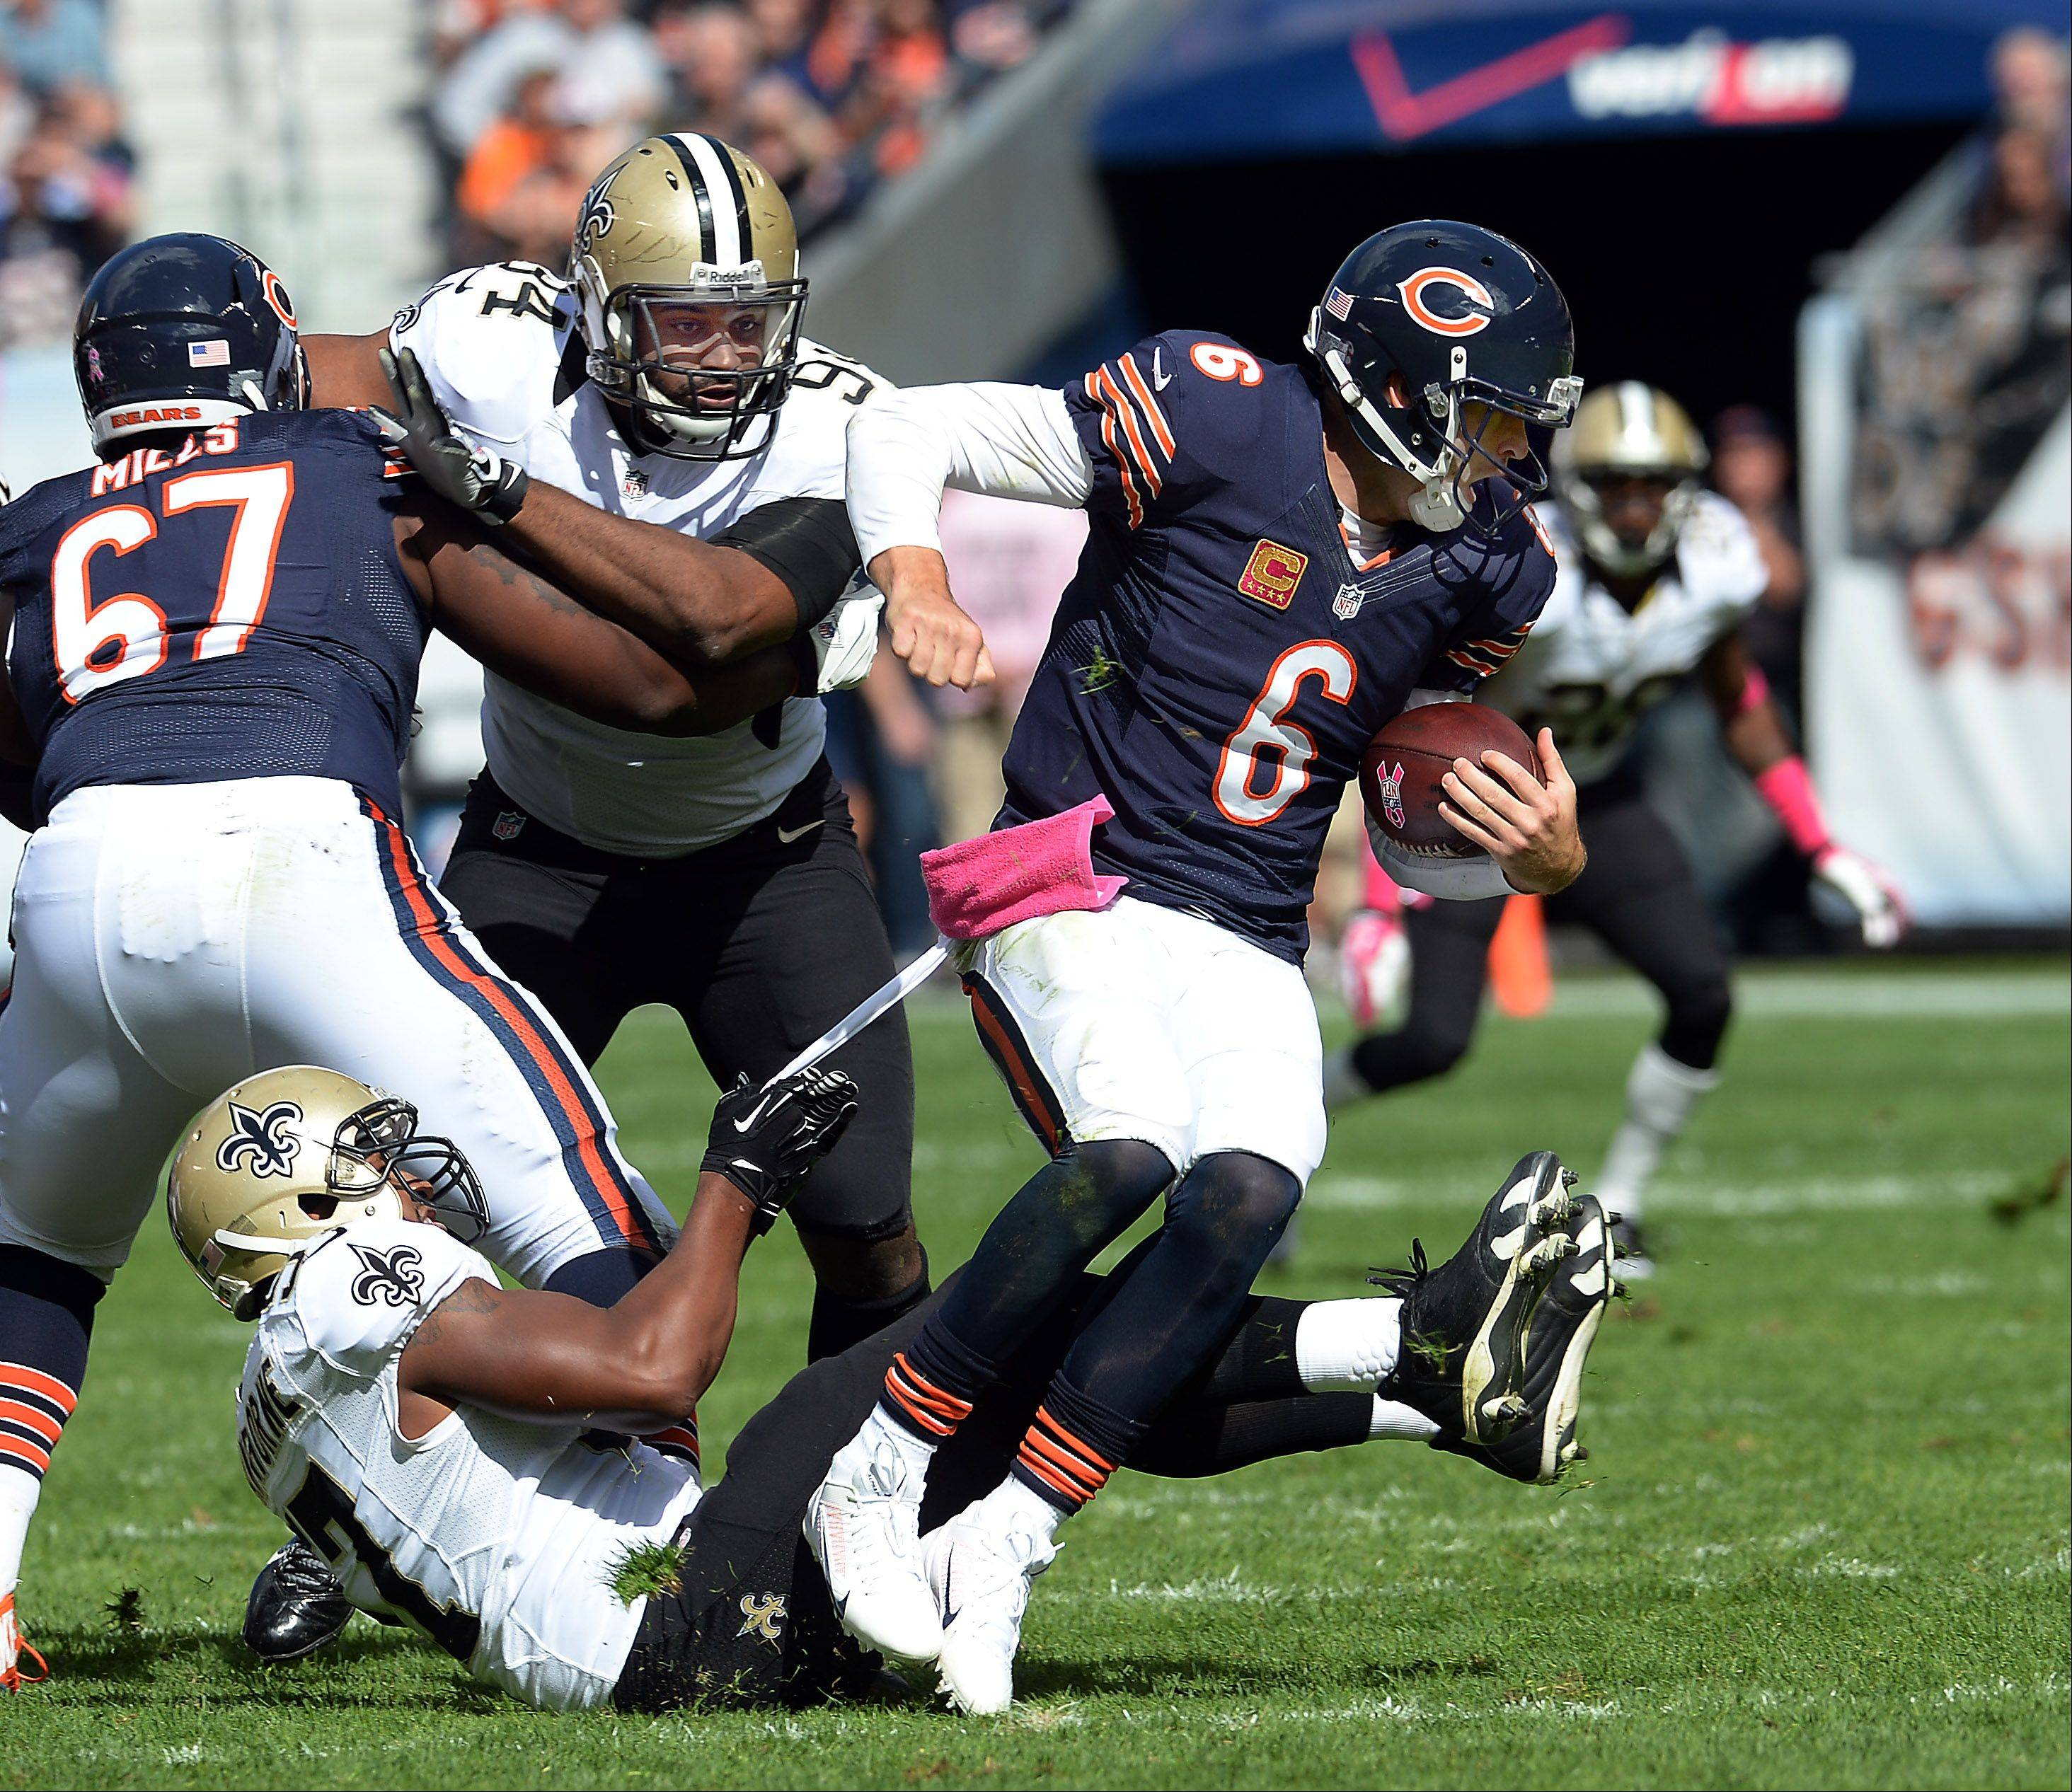 Bears quarterback Jay Cutler is sacked in the first half by the Saints' David Hawthorne Sunday at Soldier Field.